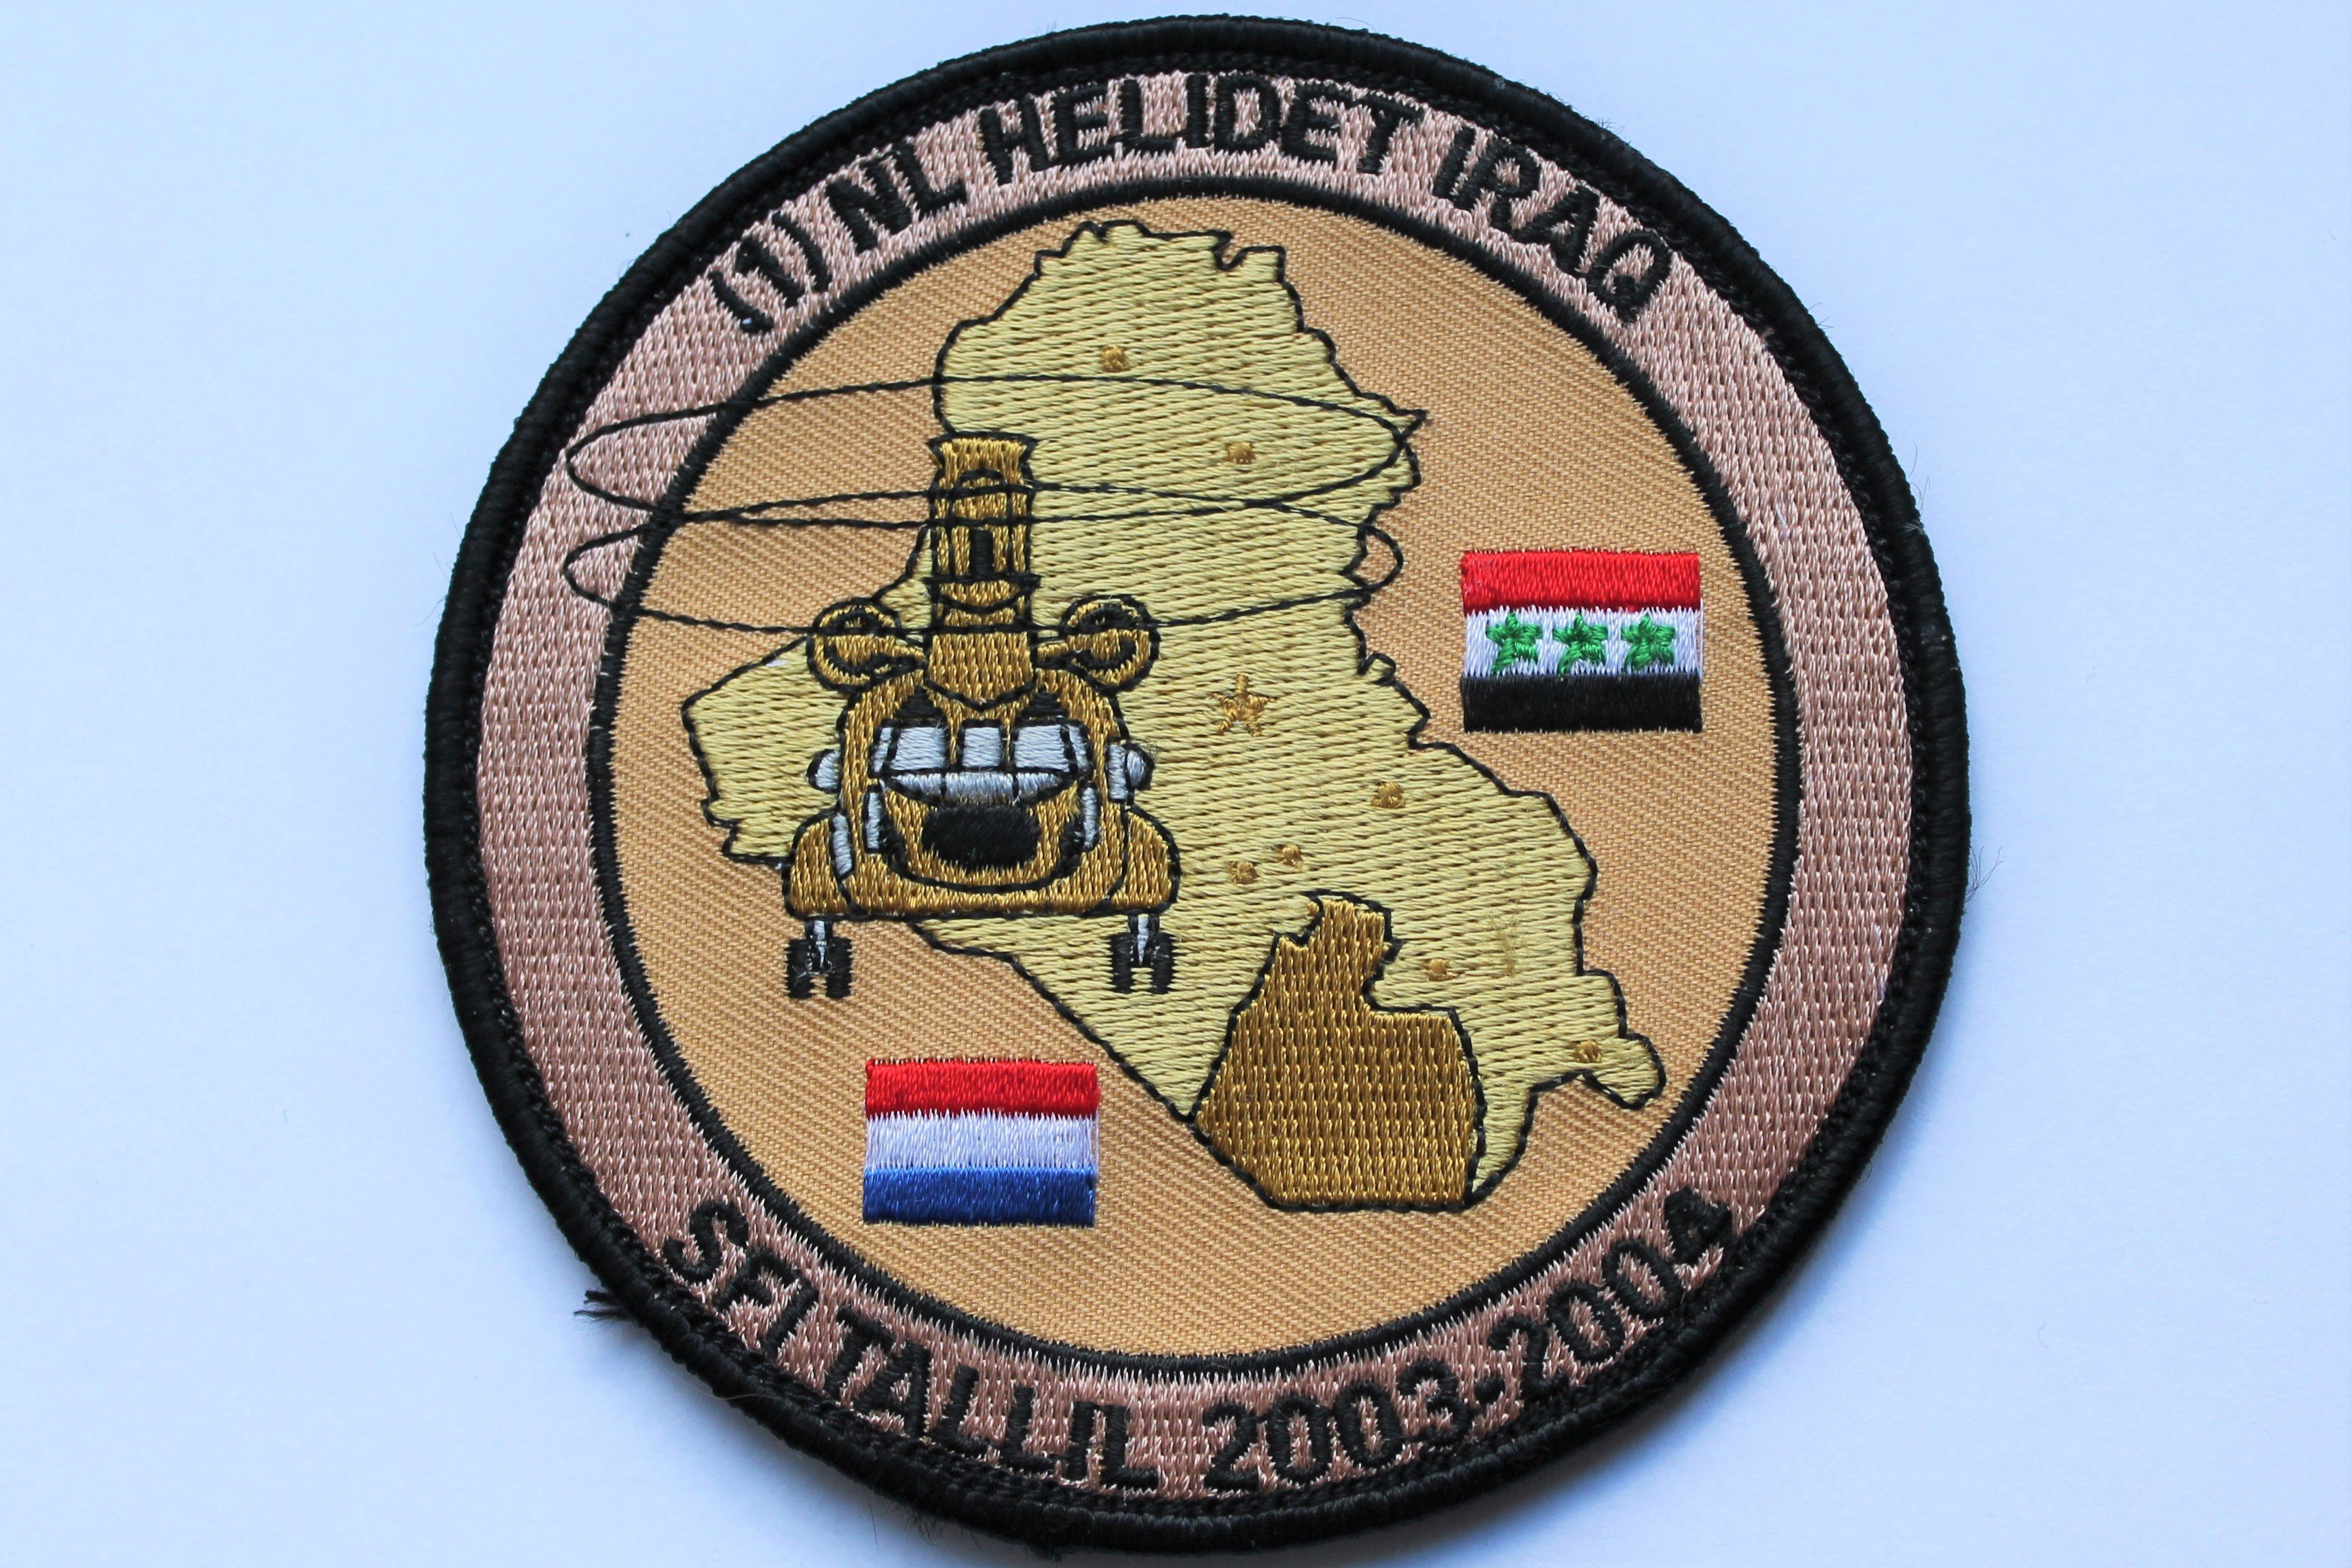 Stabilization Force Irak (SFIR)